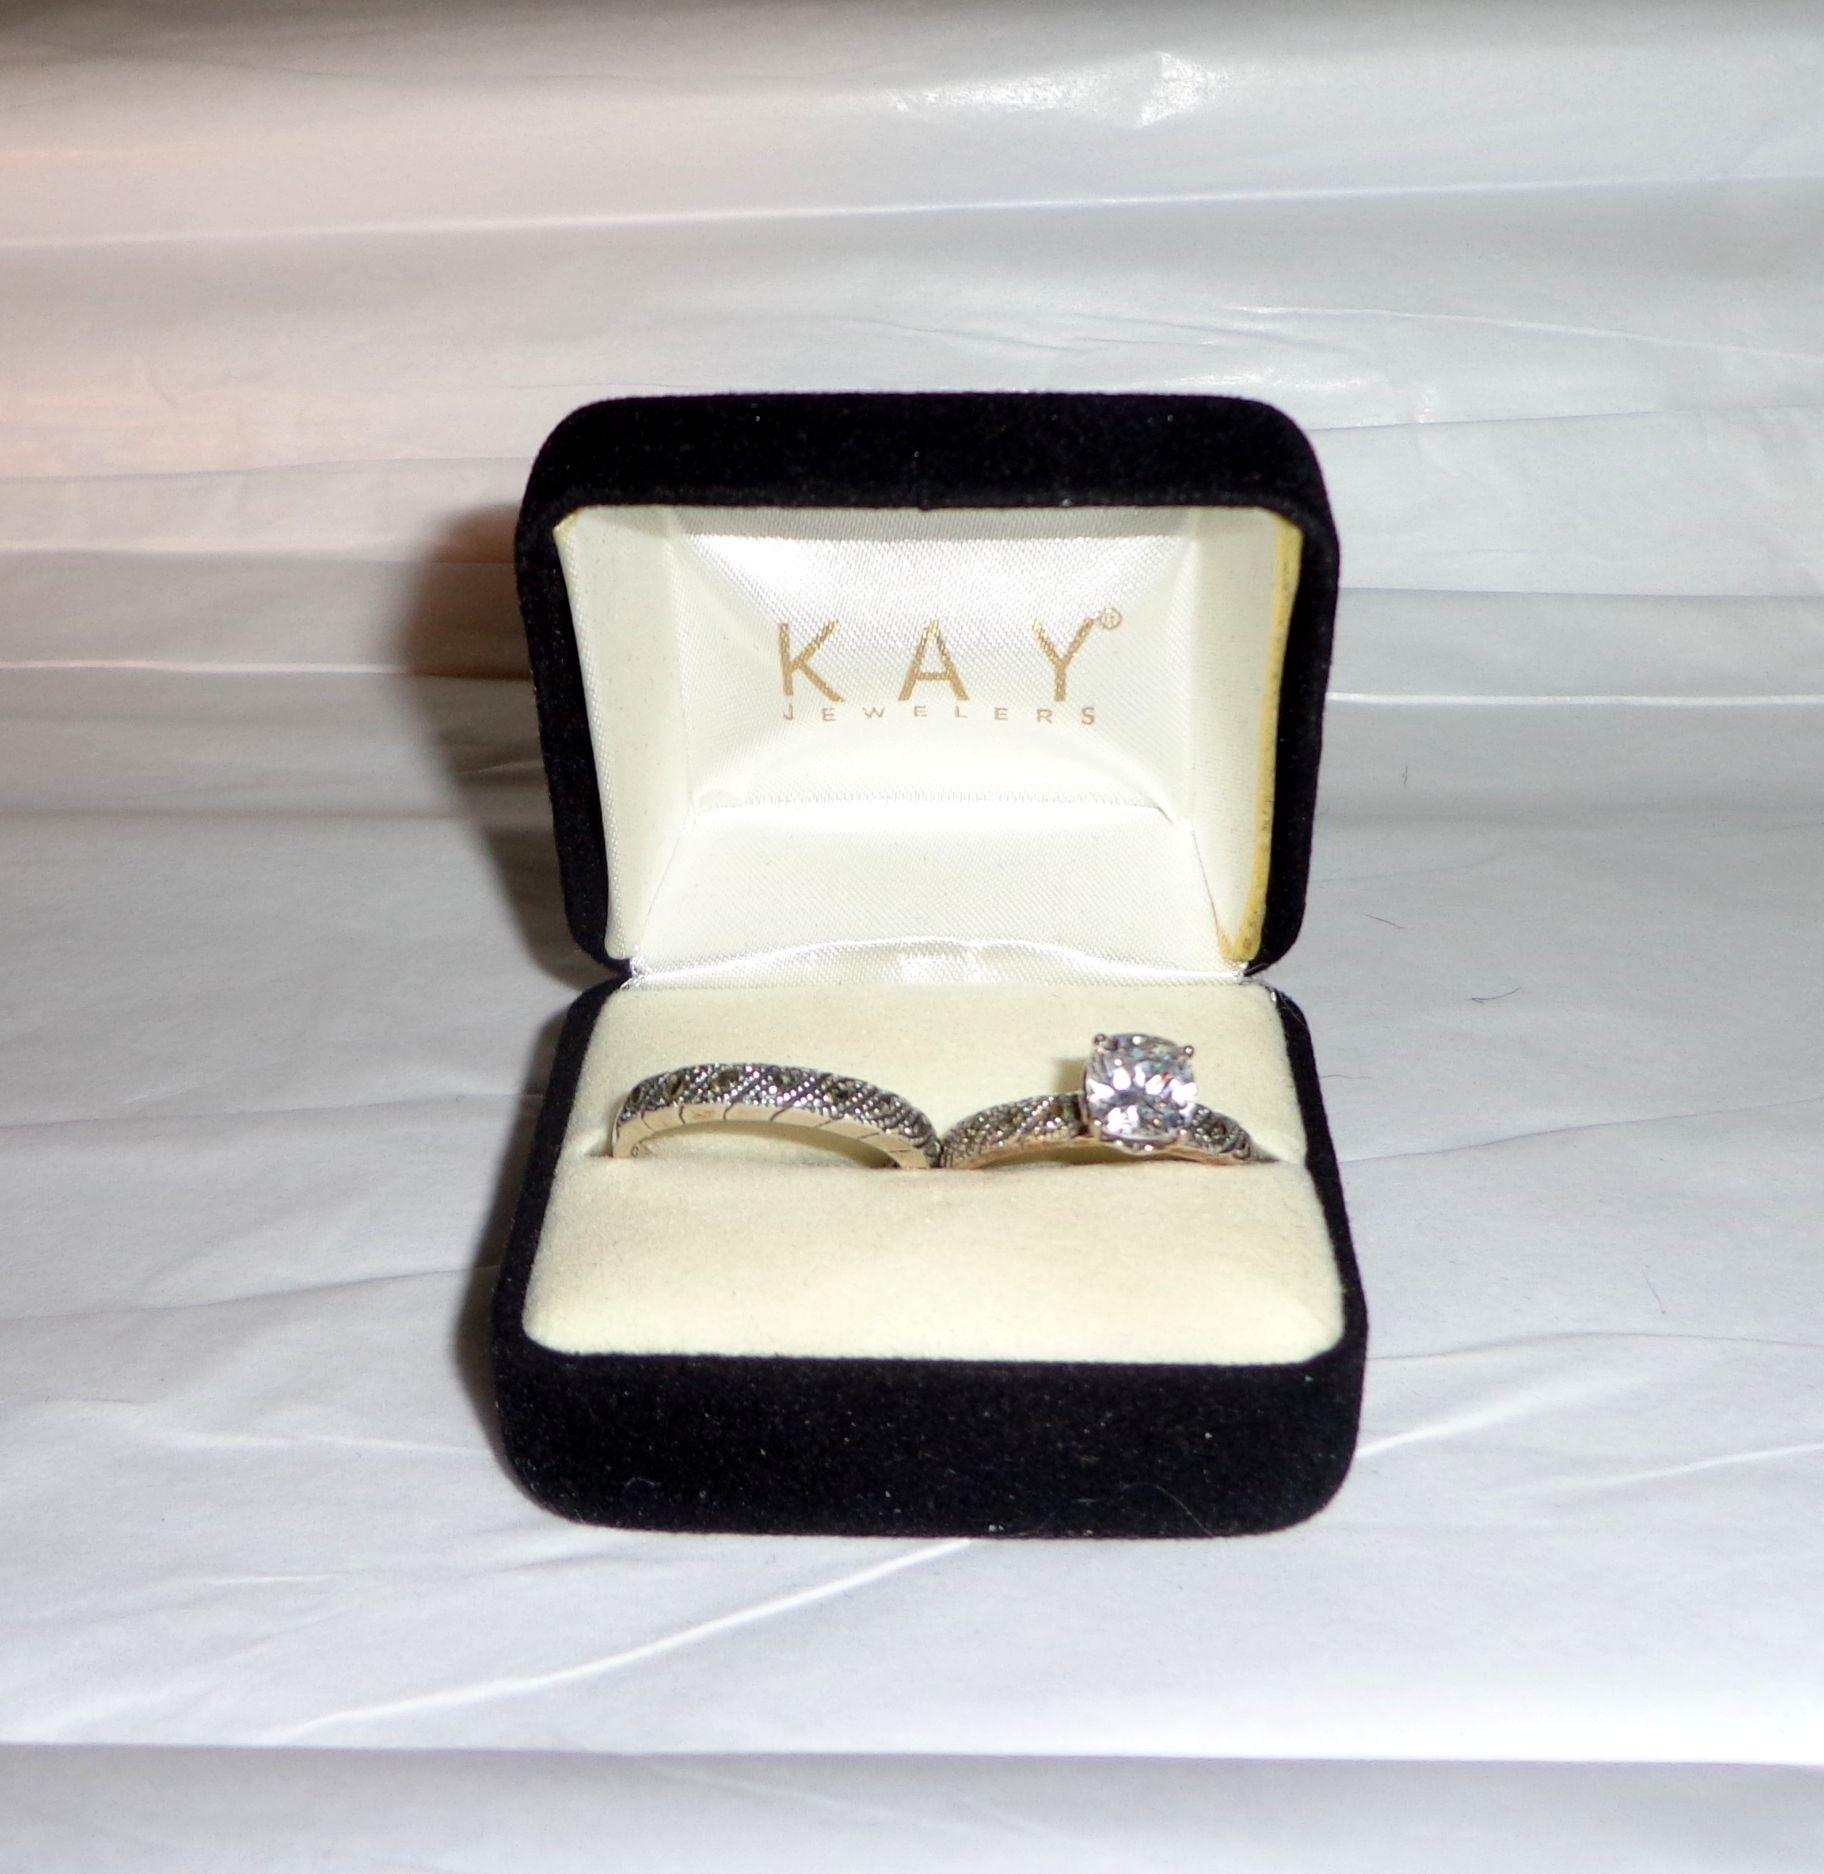 Kay Jewelers Silver 925 Engagement Set Size 7 Ring